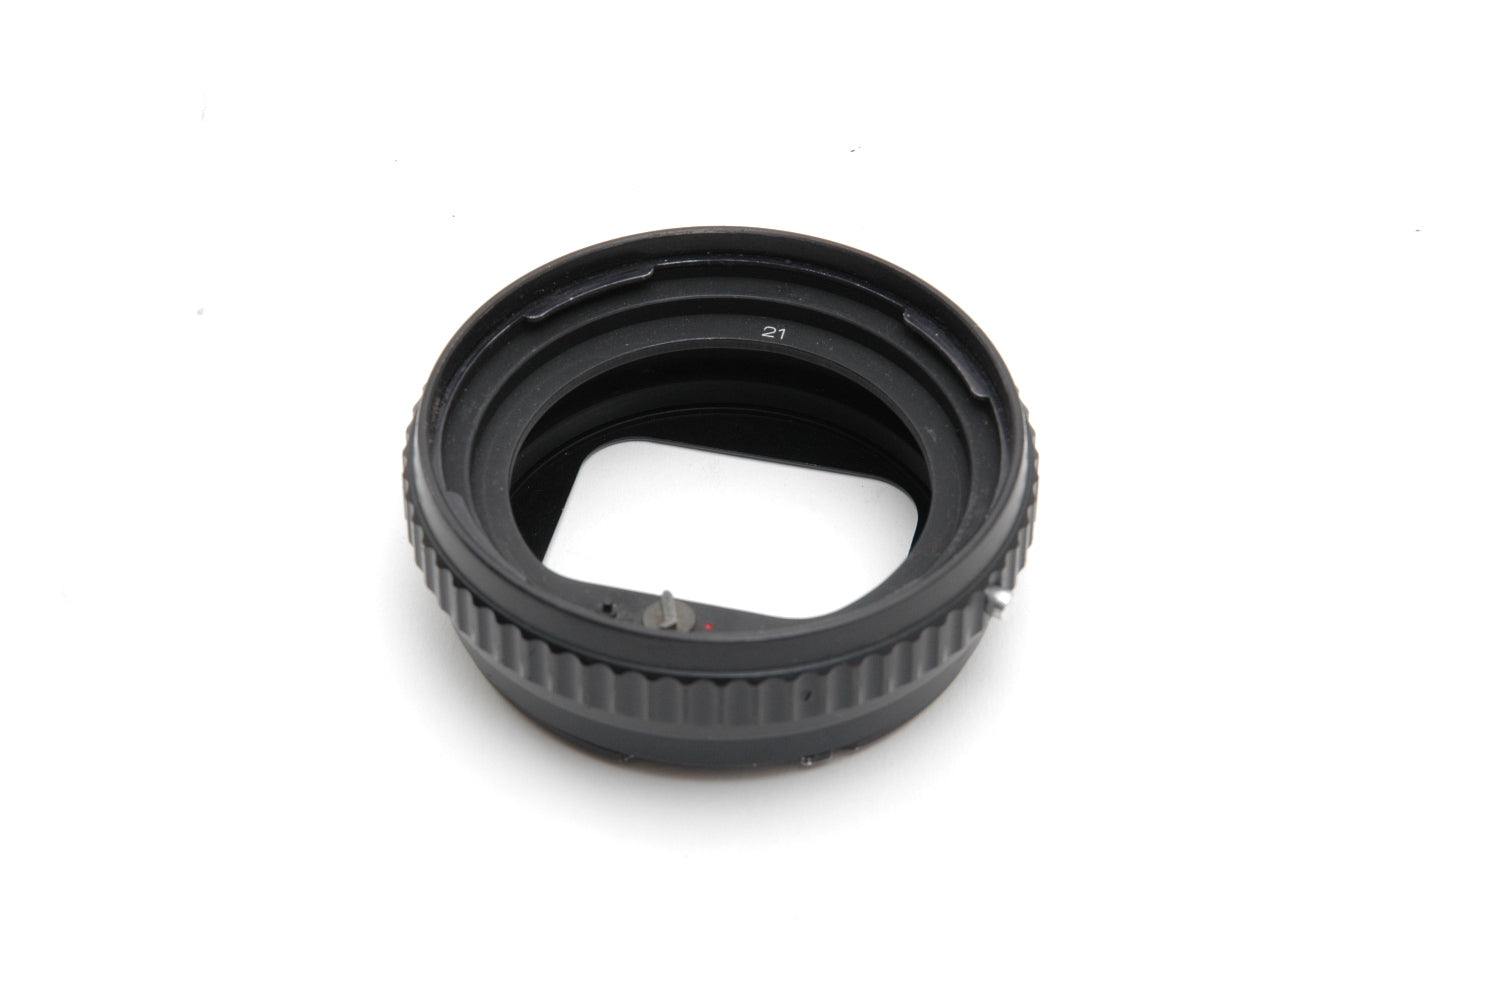 Used Hasselblad 21 Extension Tube